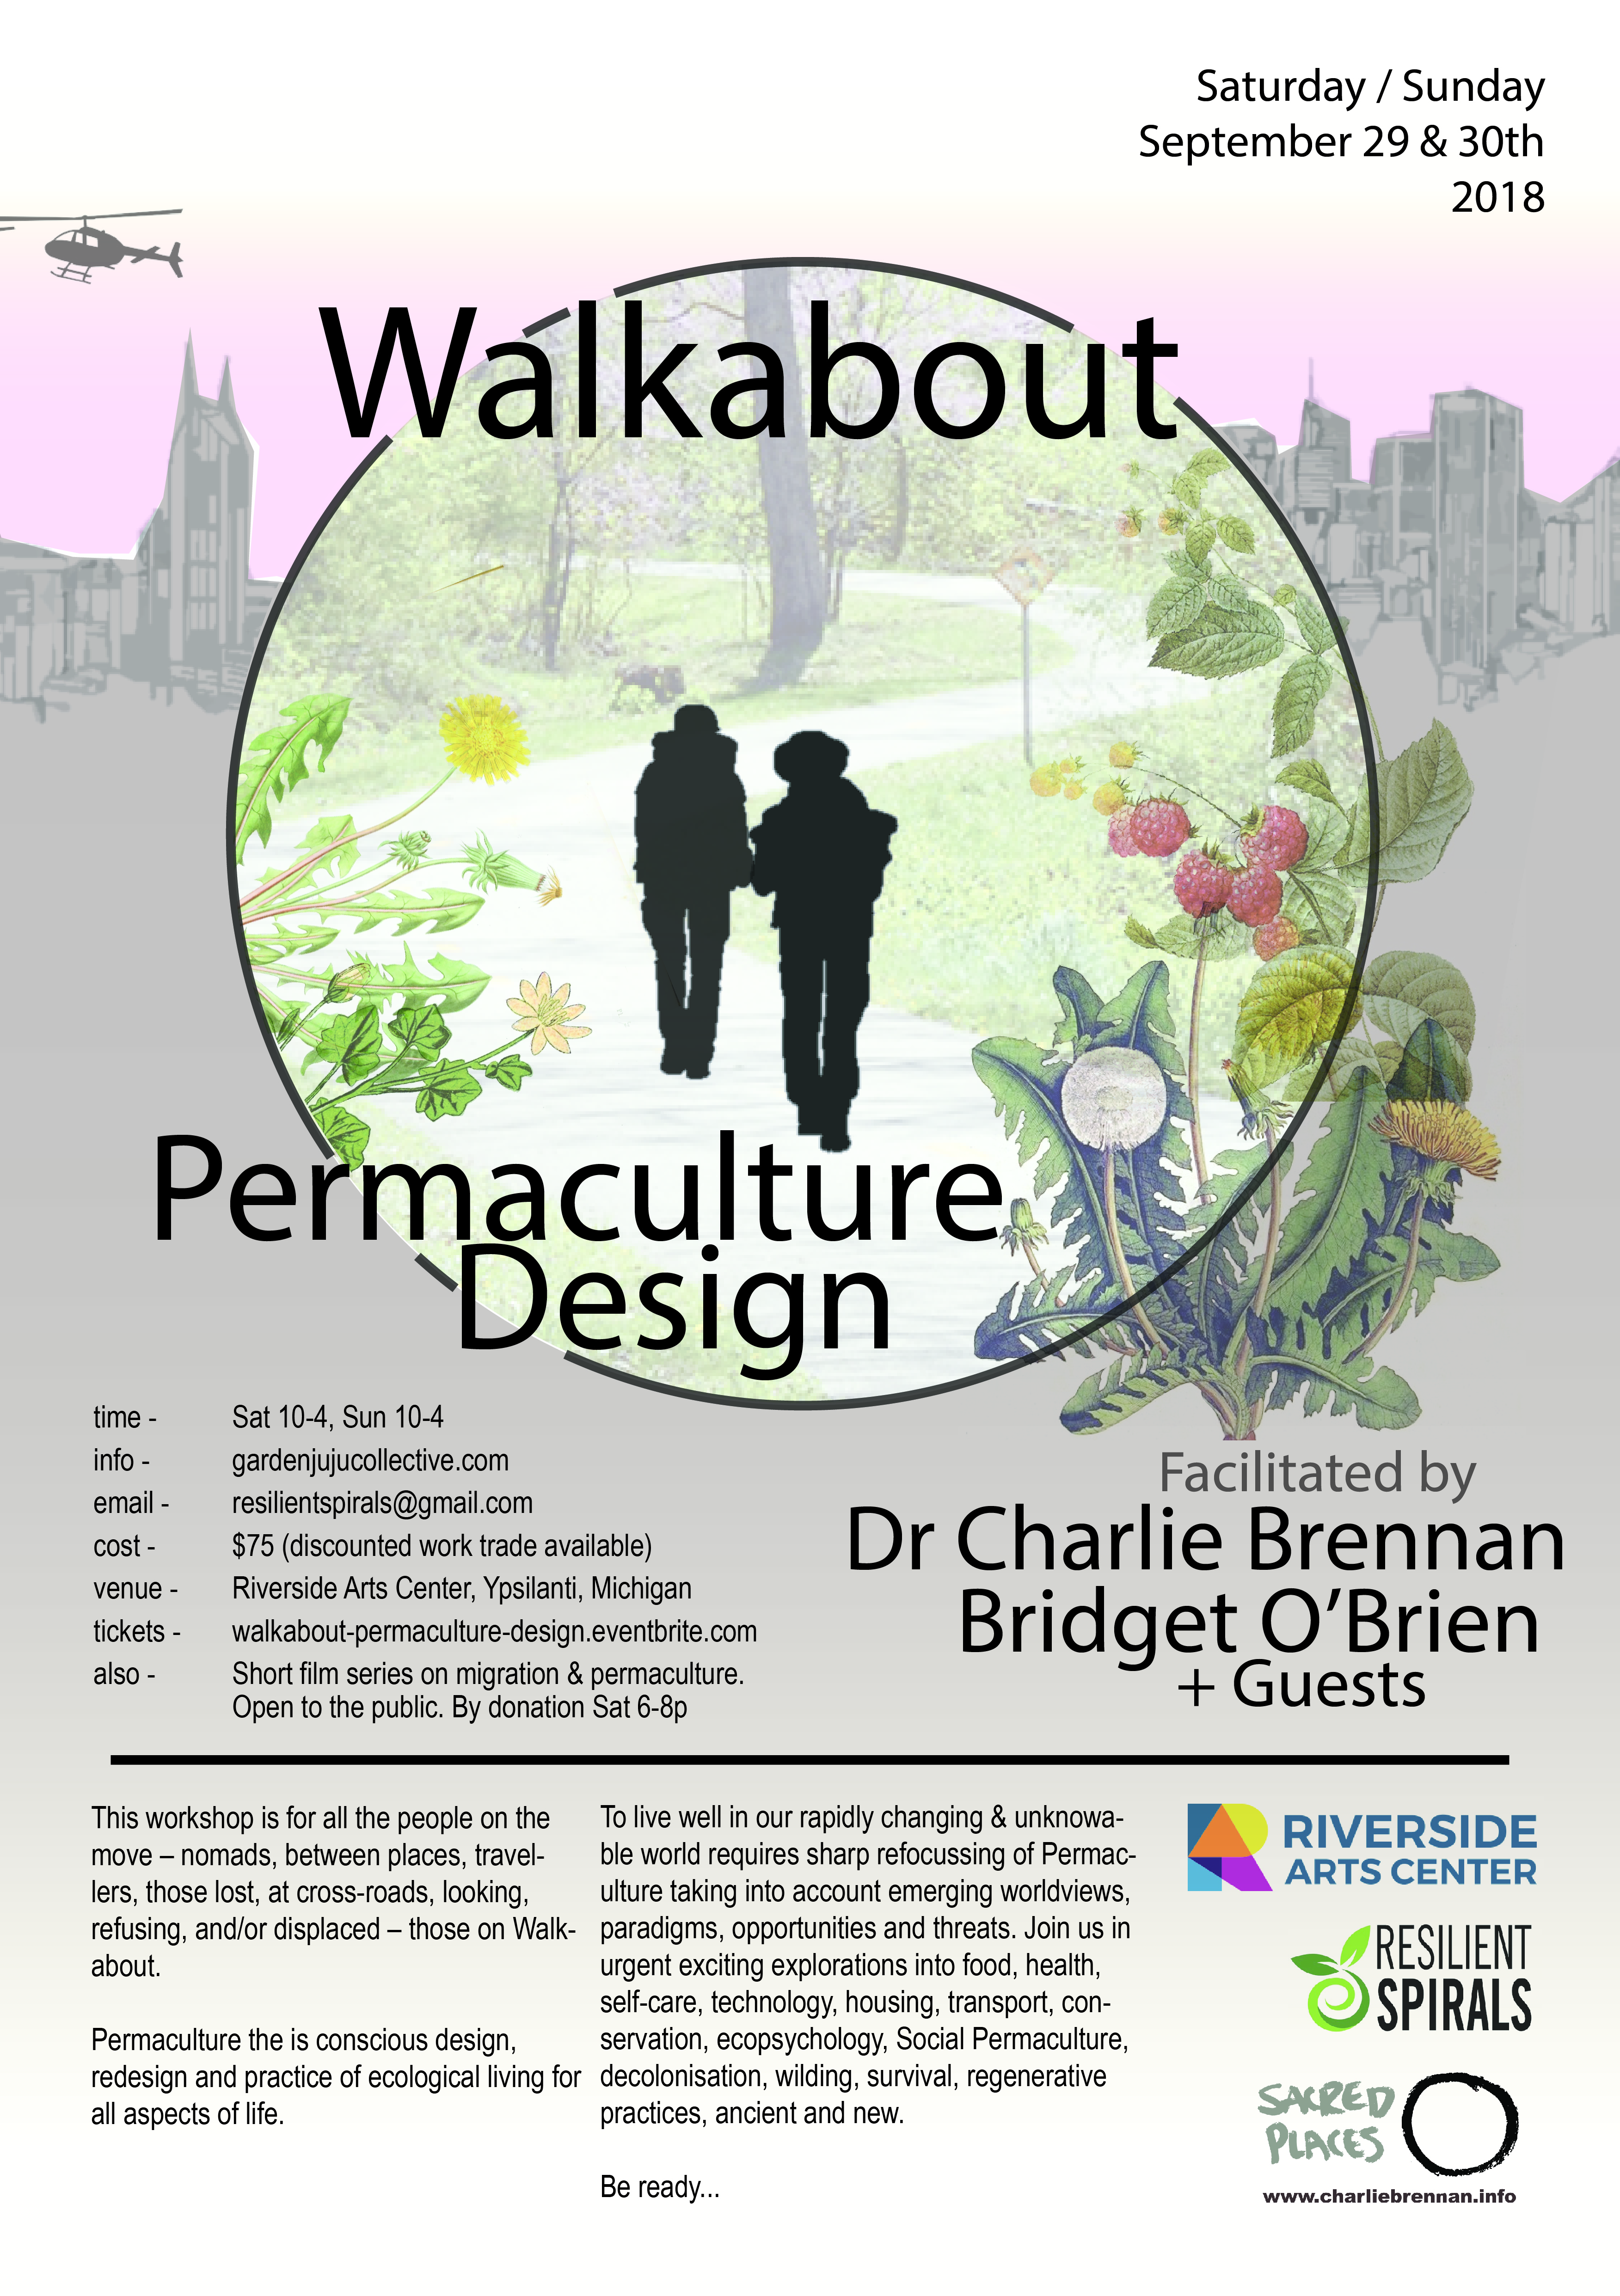 Walkabout Permaculture Design Flyer - MI 2018